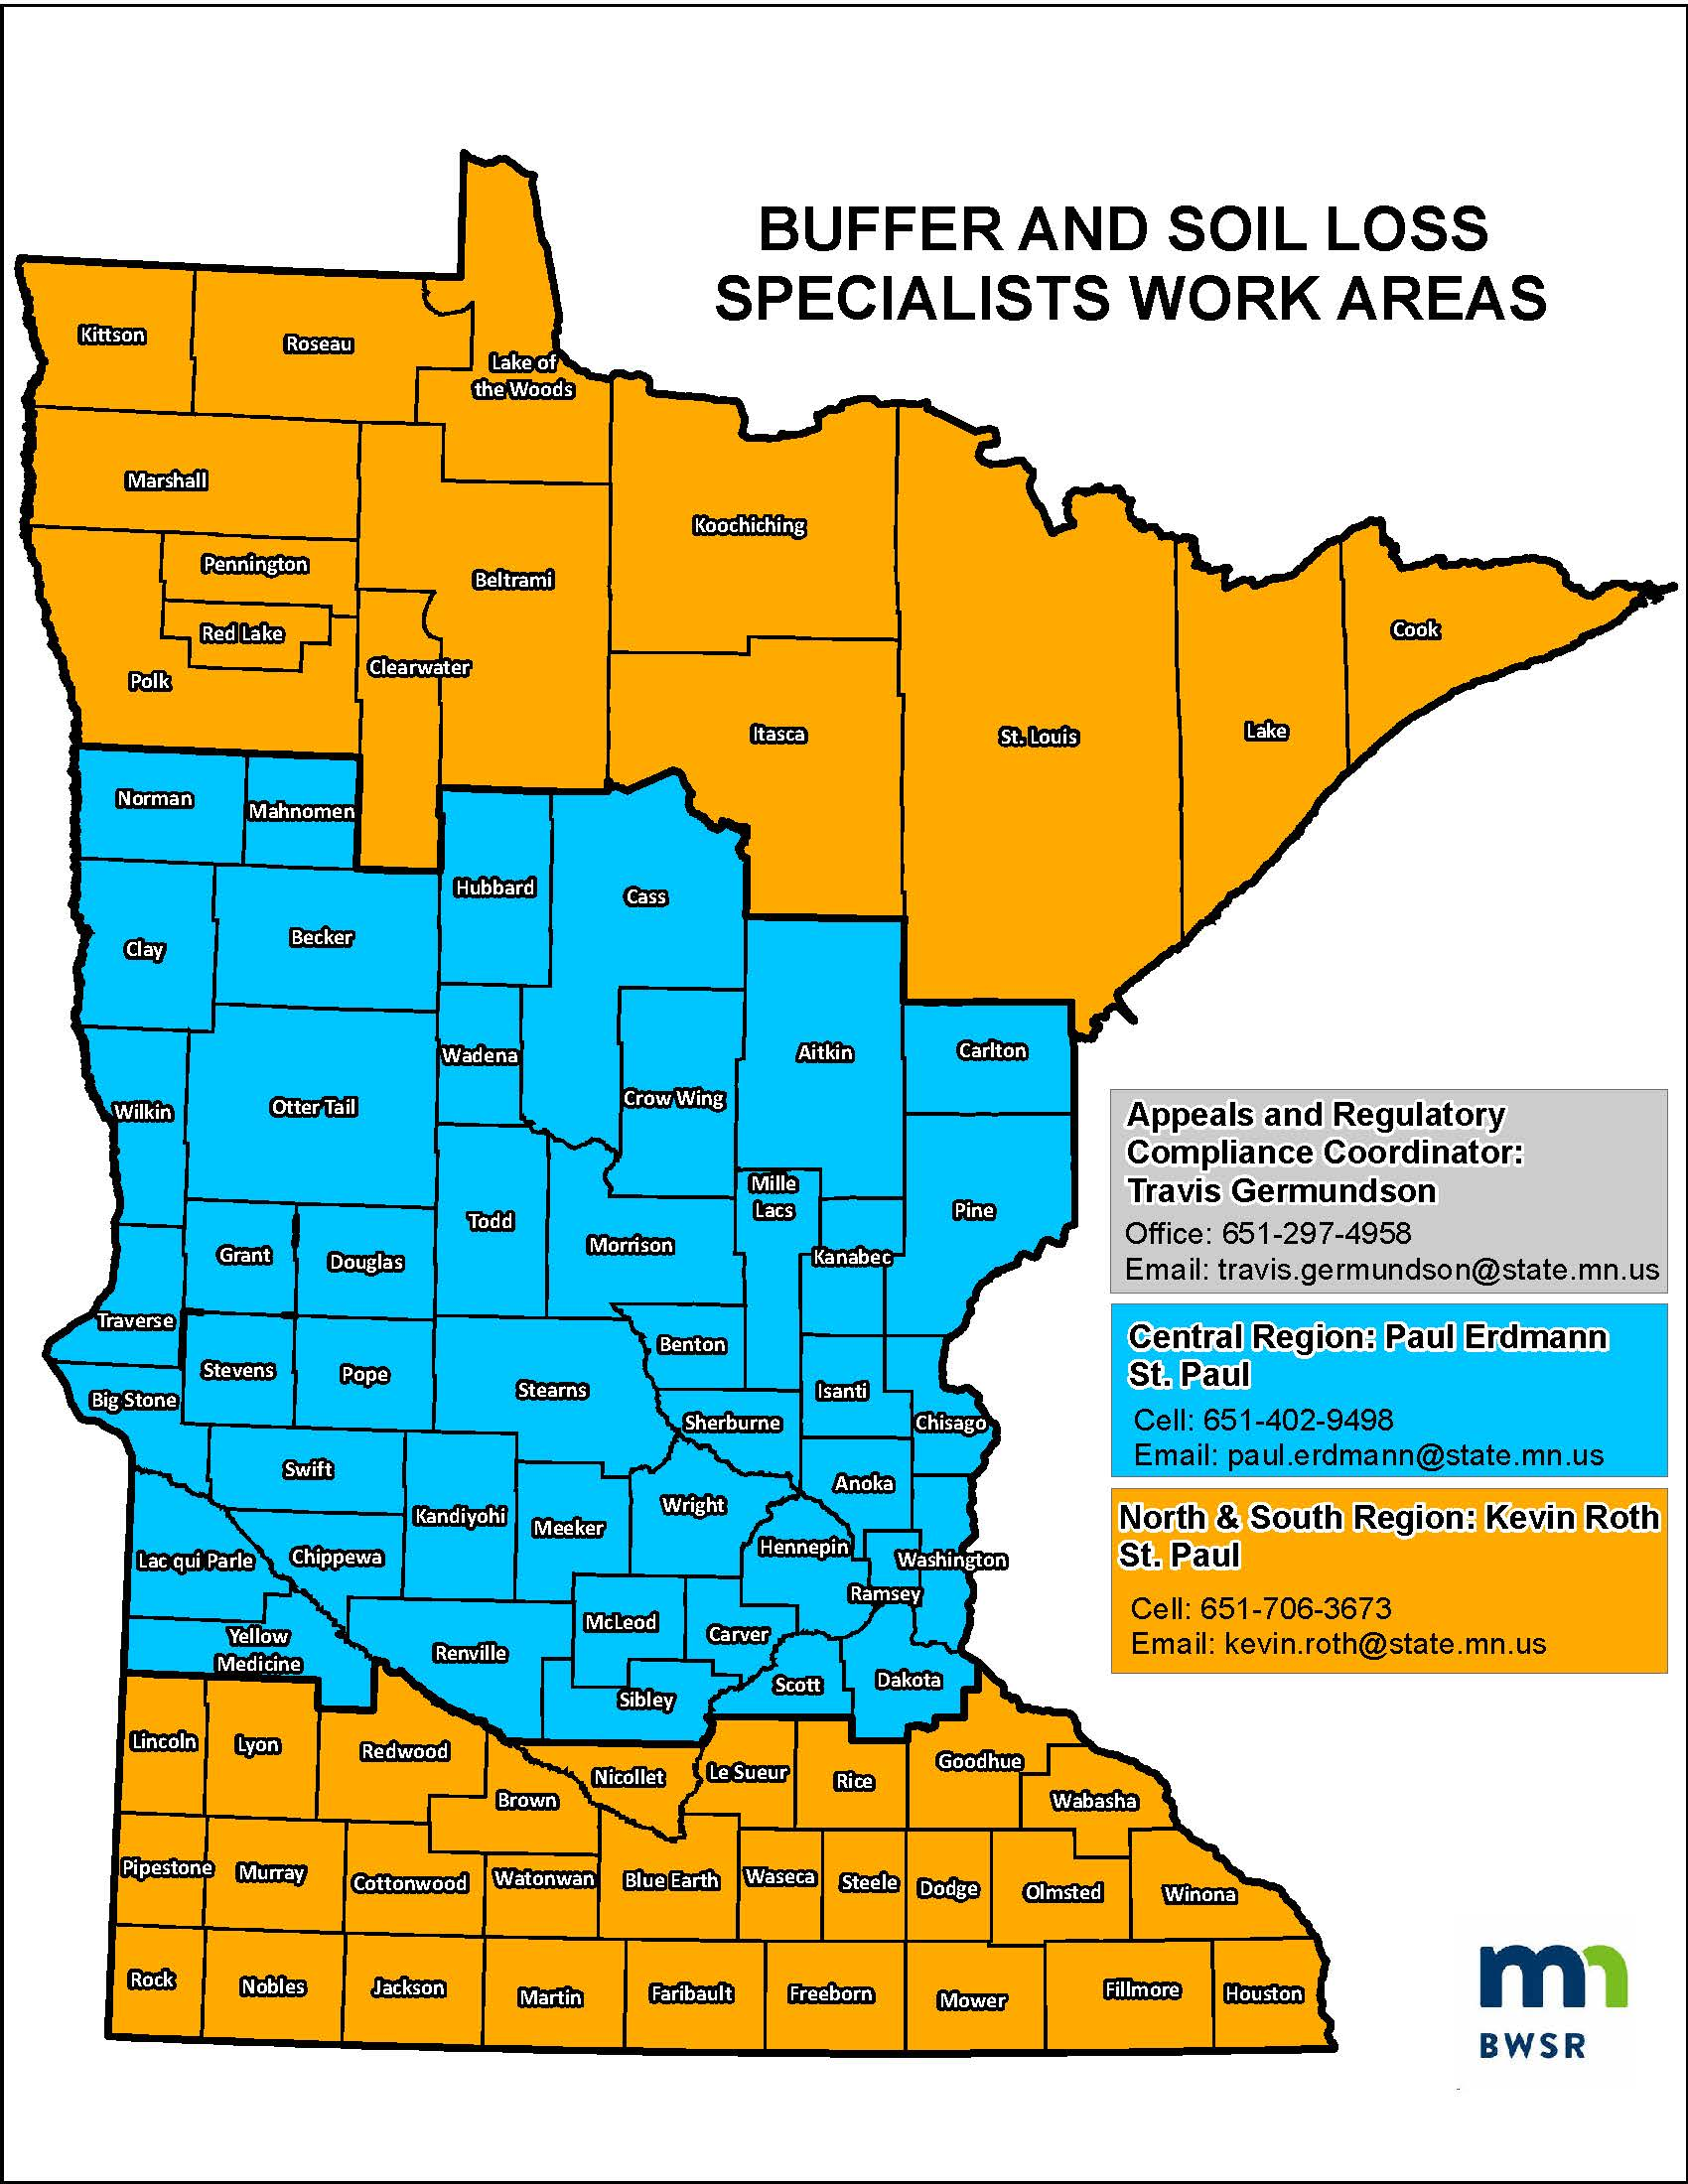 Buffer and Soil Loss Specialist Work Areas as of January 2021